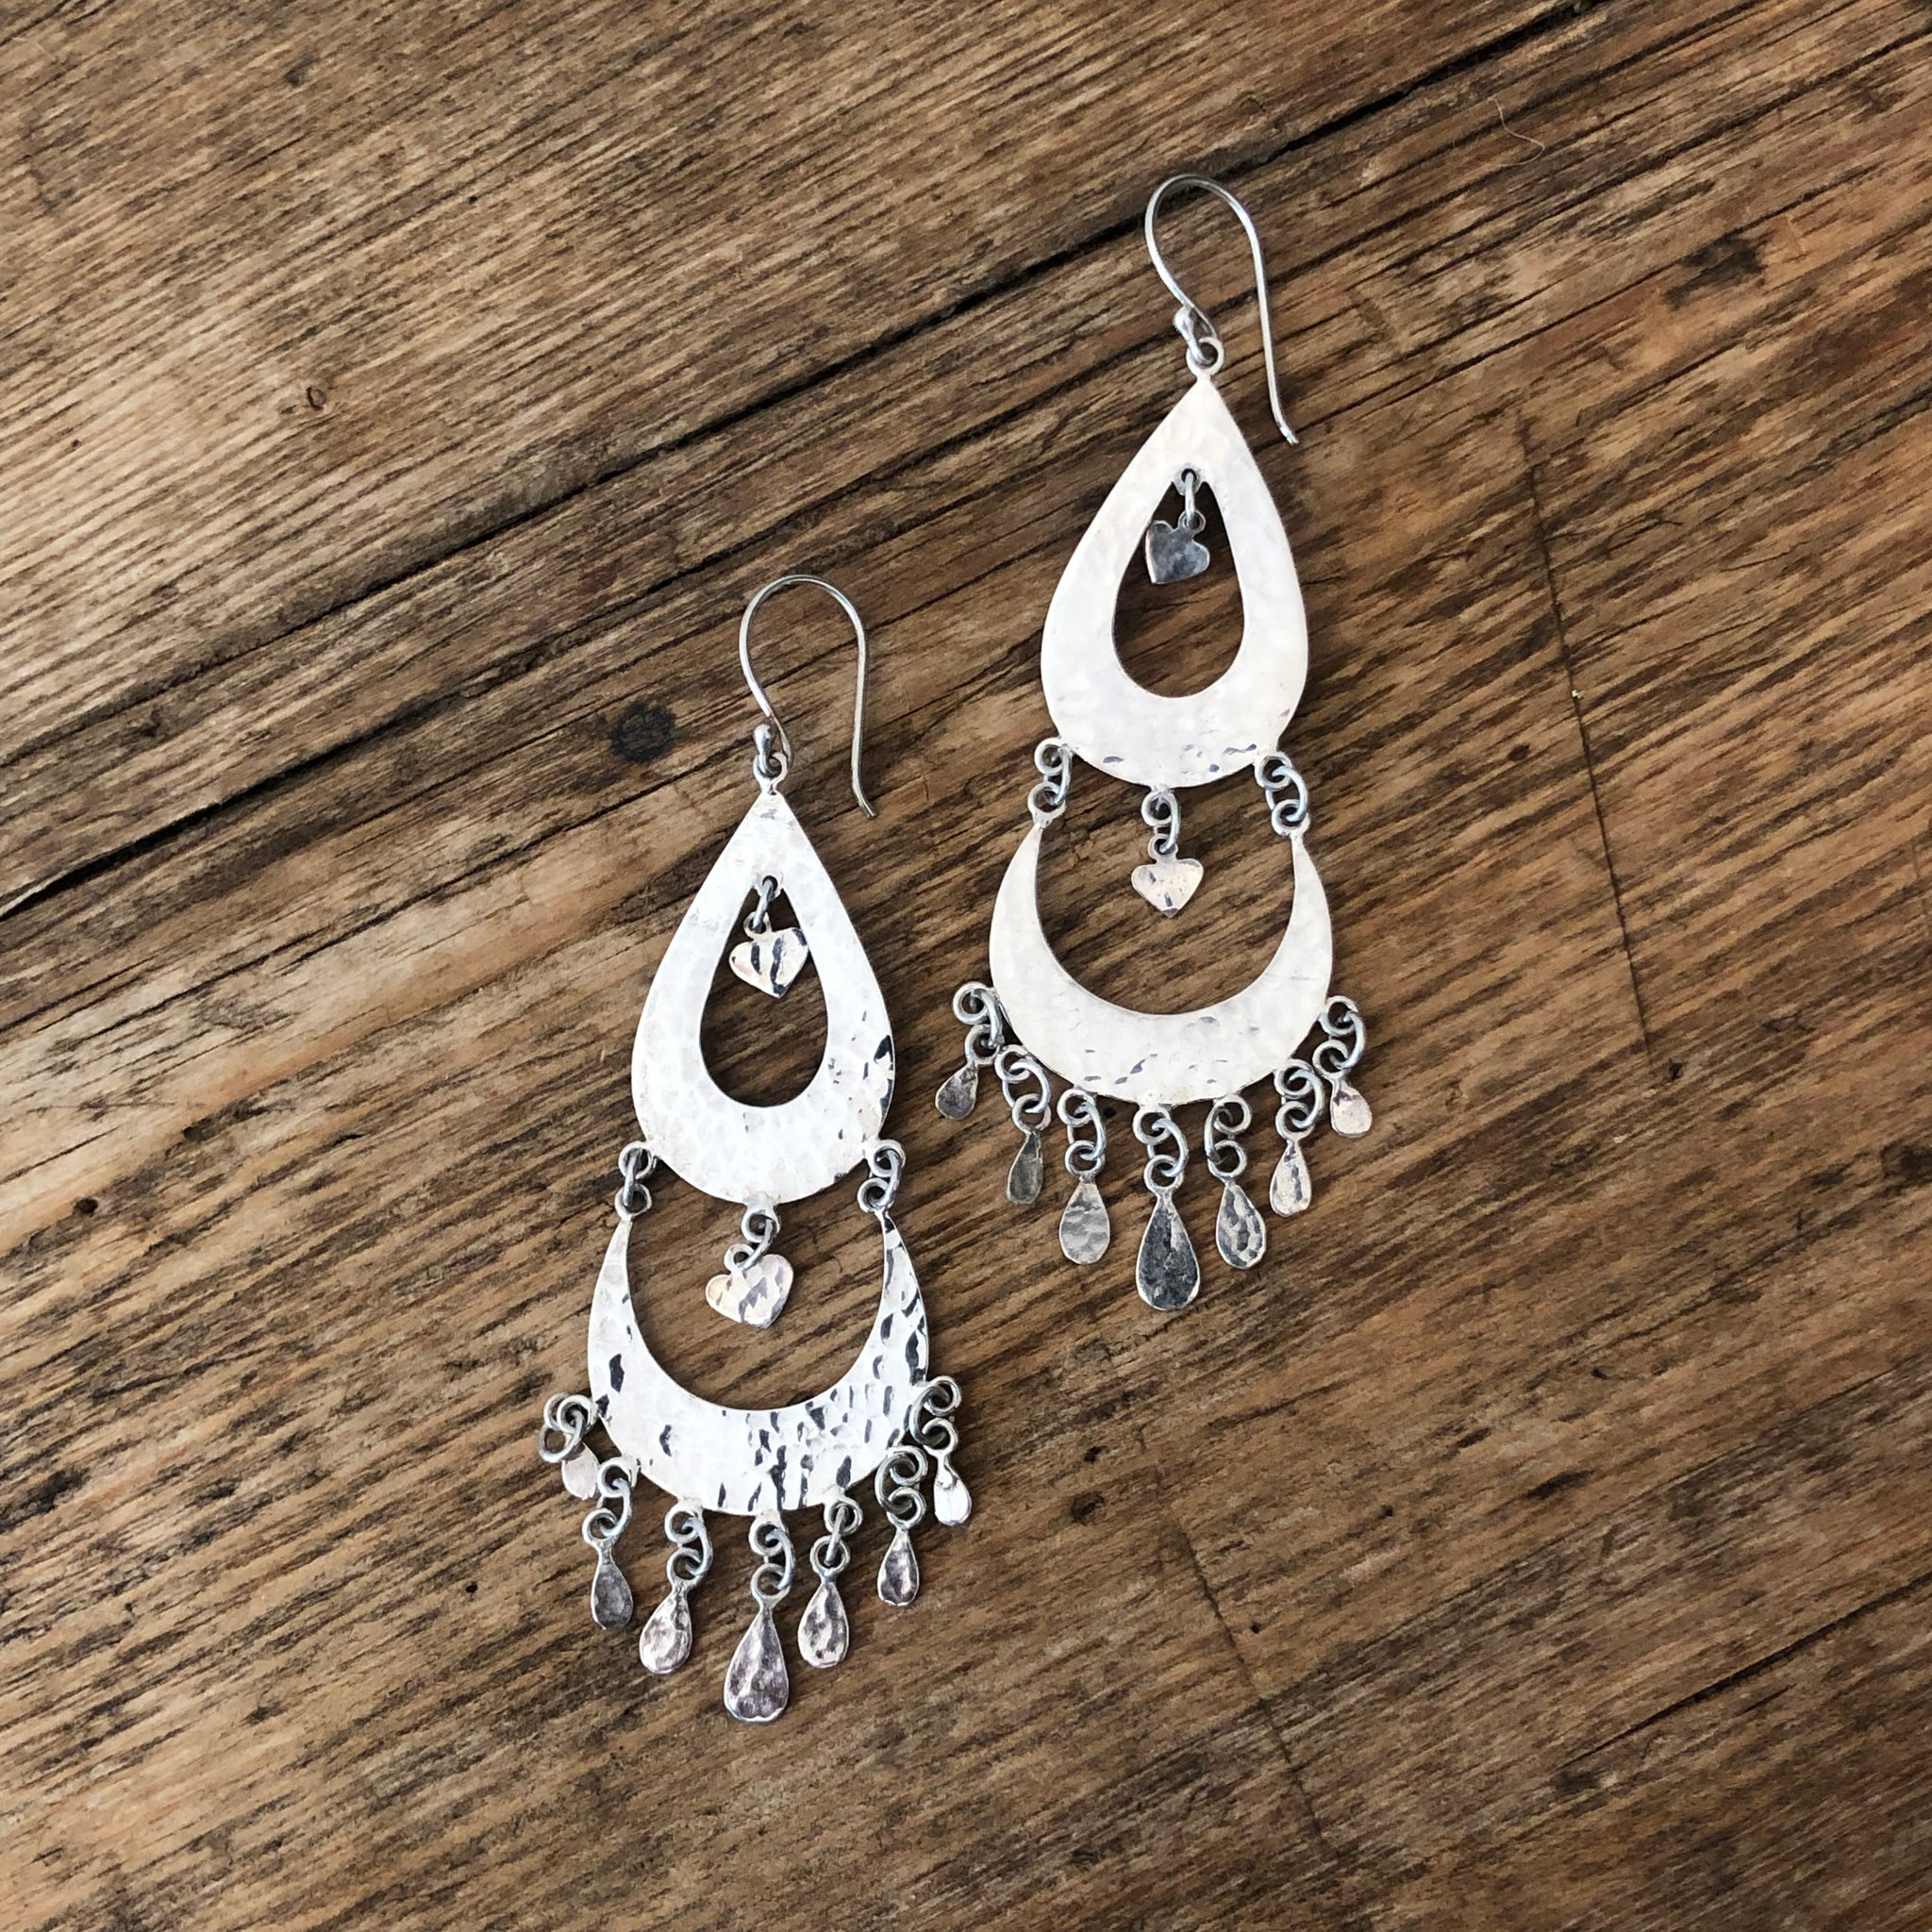 'Arabesque' Earrings